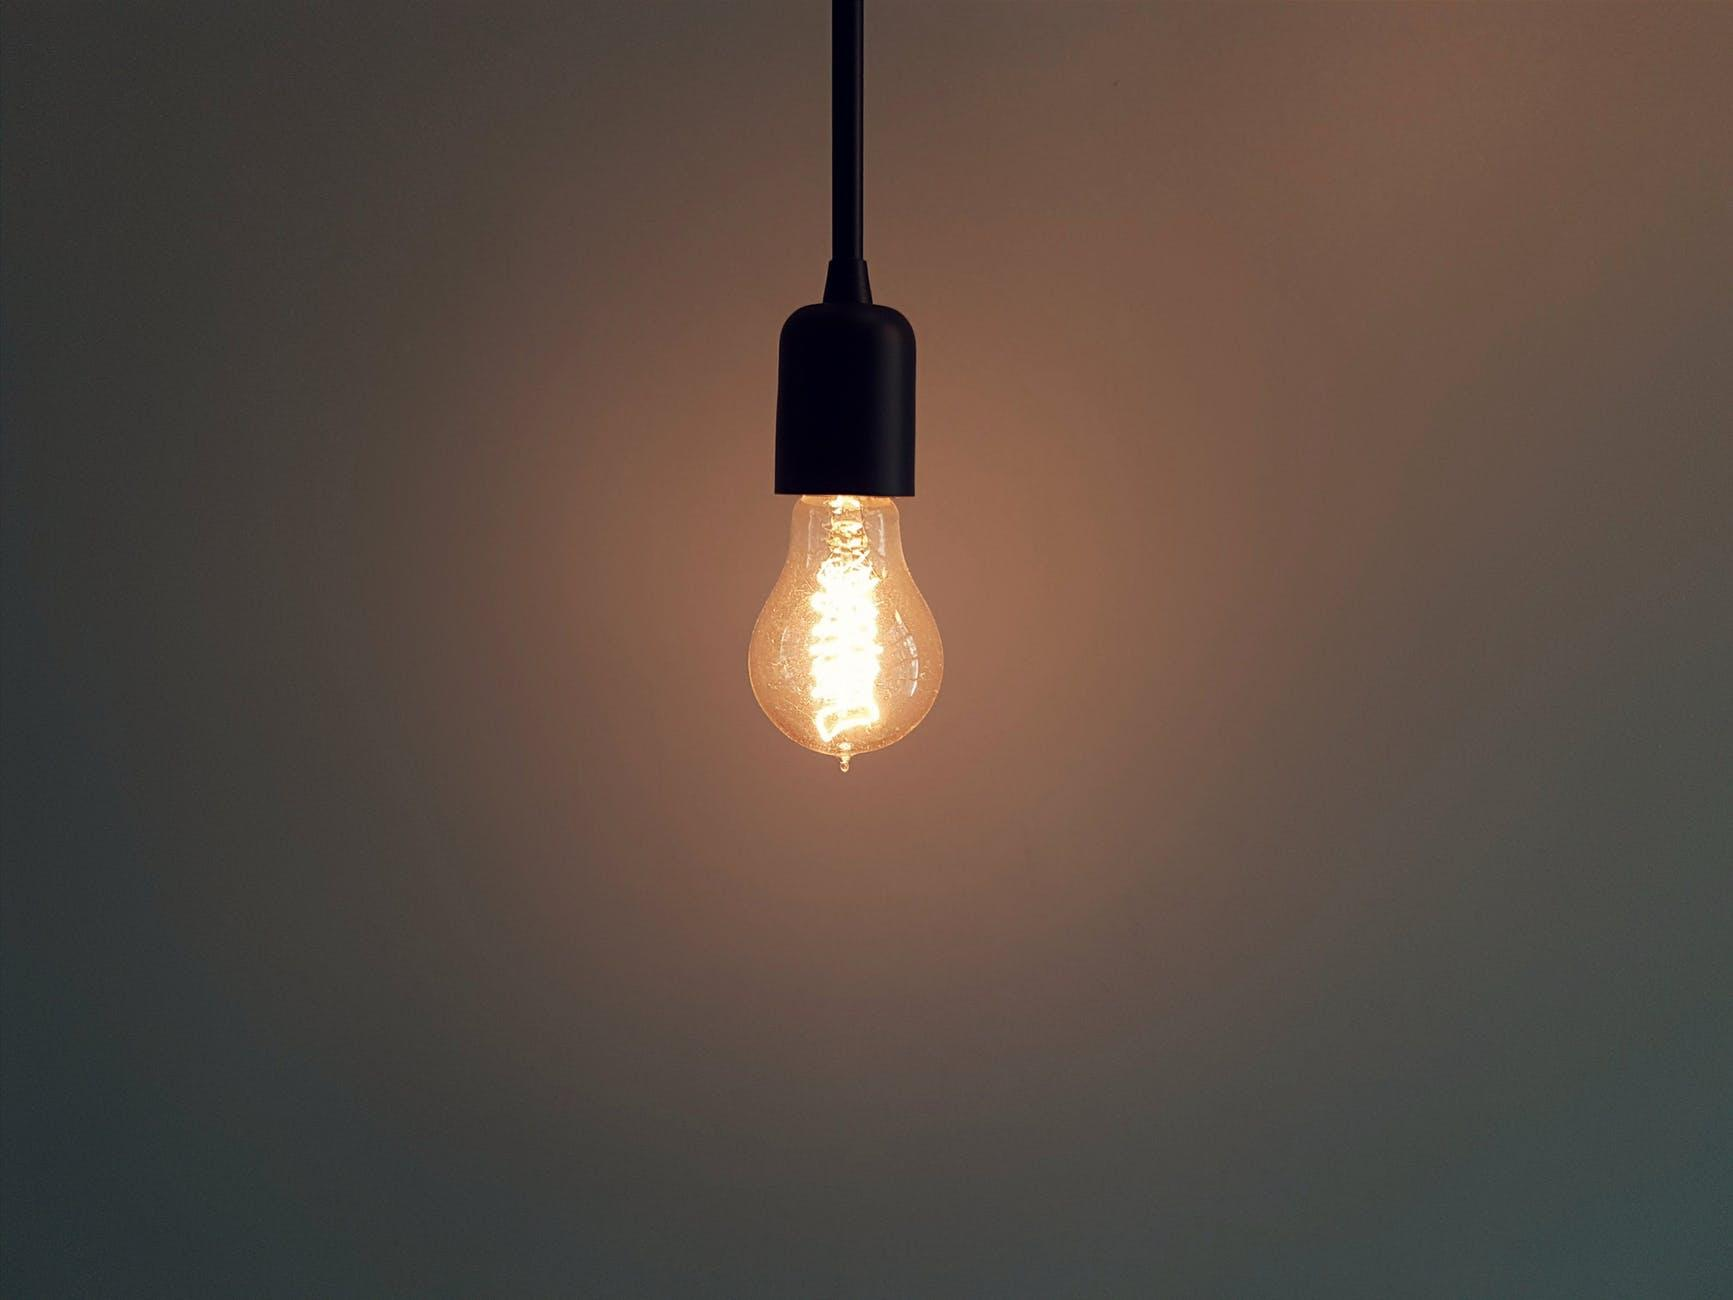 Stage 2 power cuts to hit SA from 9pm on Saturday to 5am on Monday